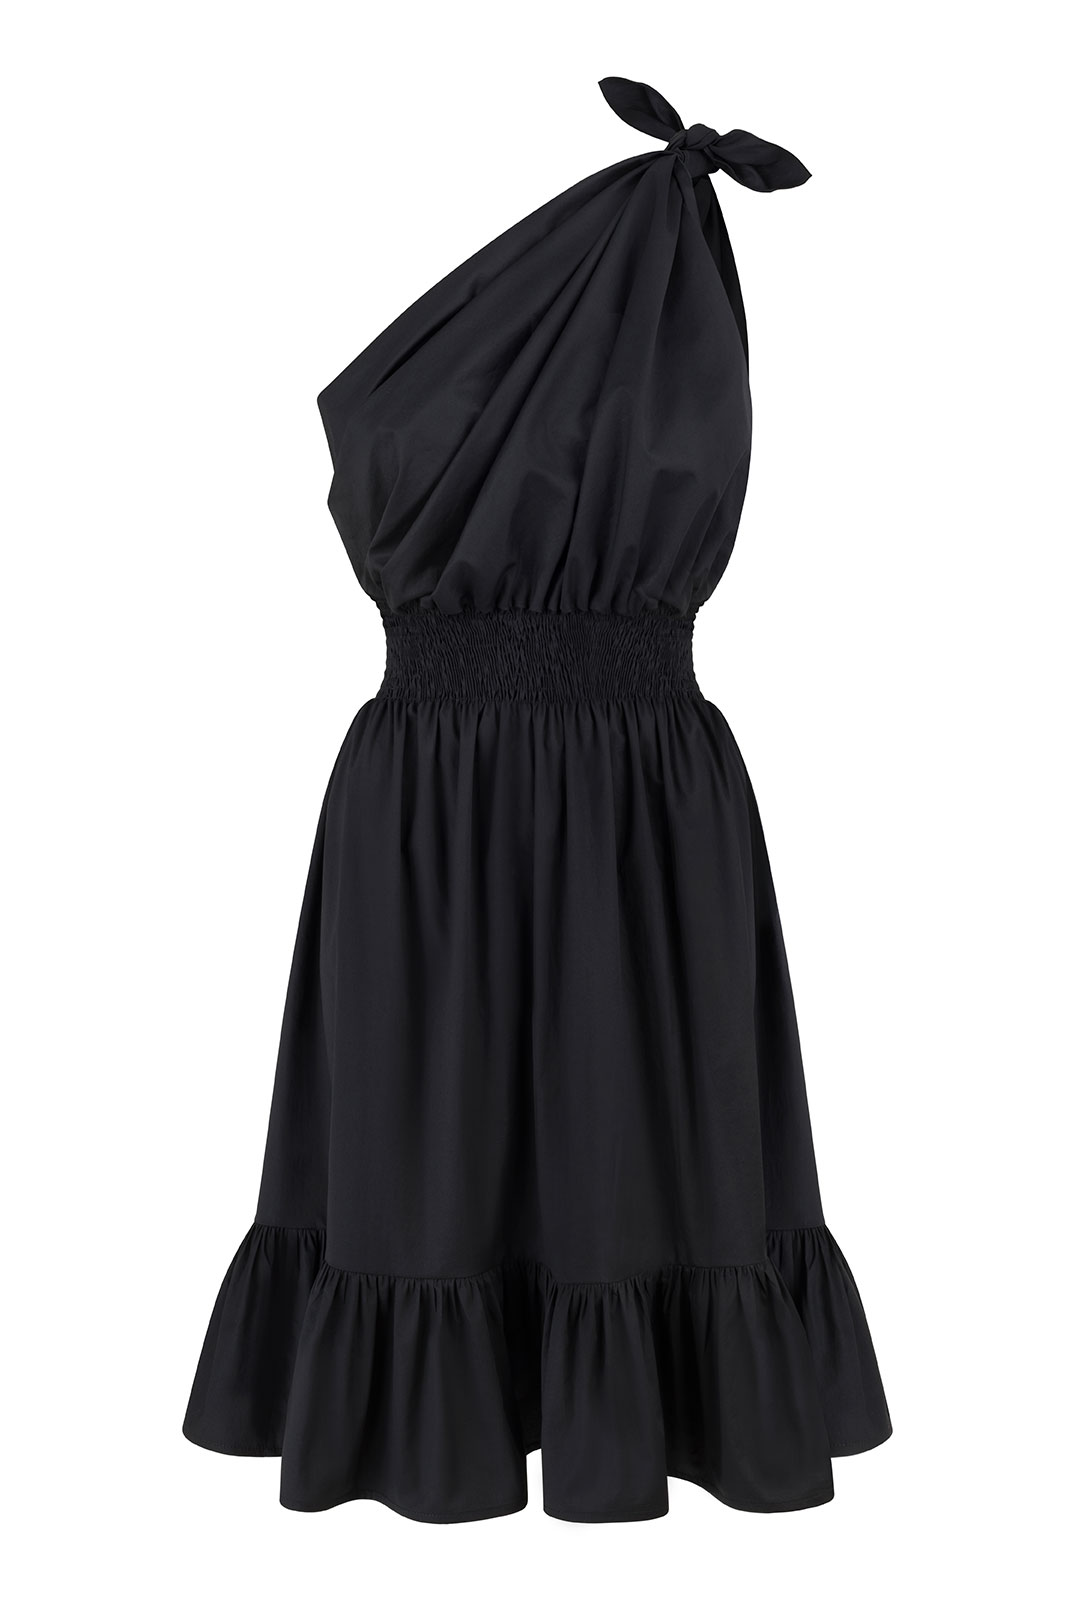 Demi One Shoulder Black Dress by Monica Nera on curated-crowd.com